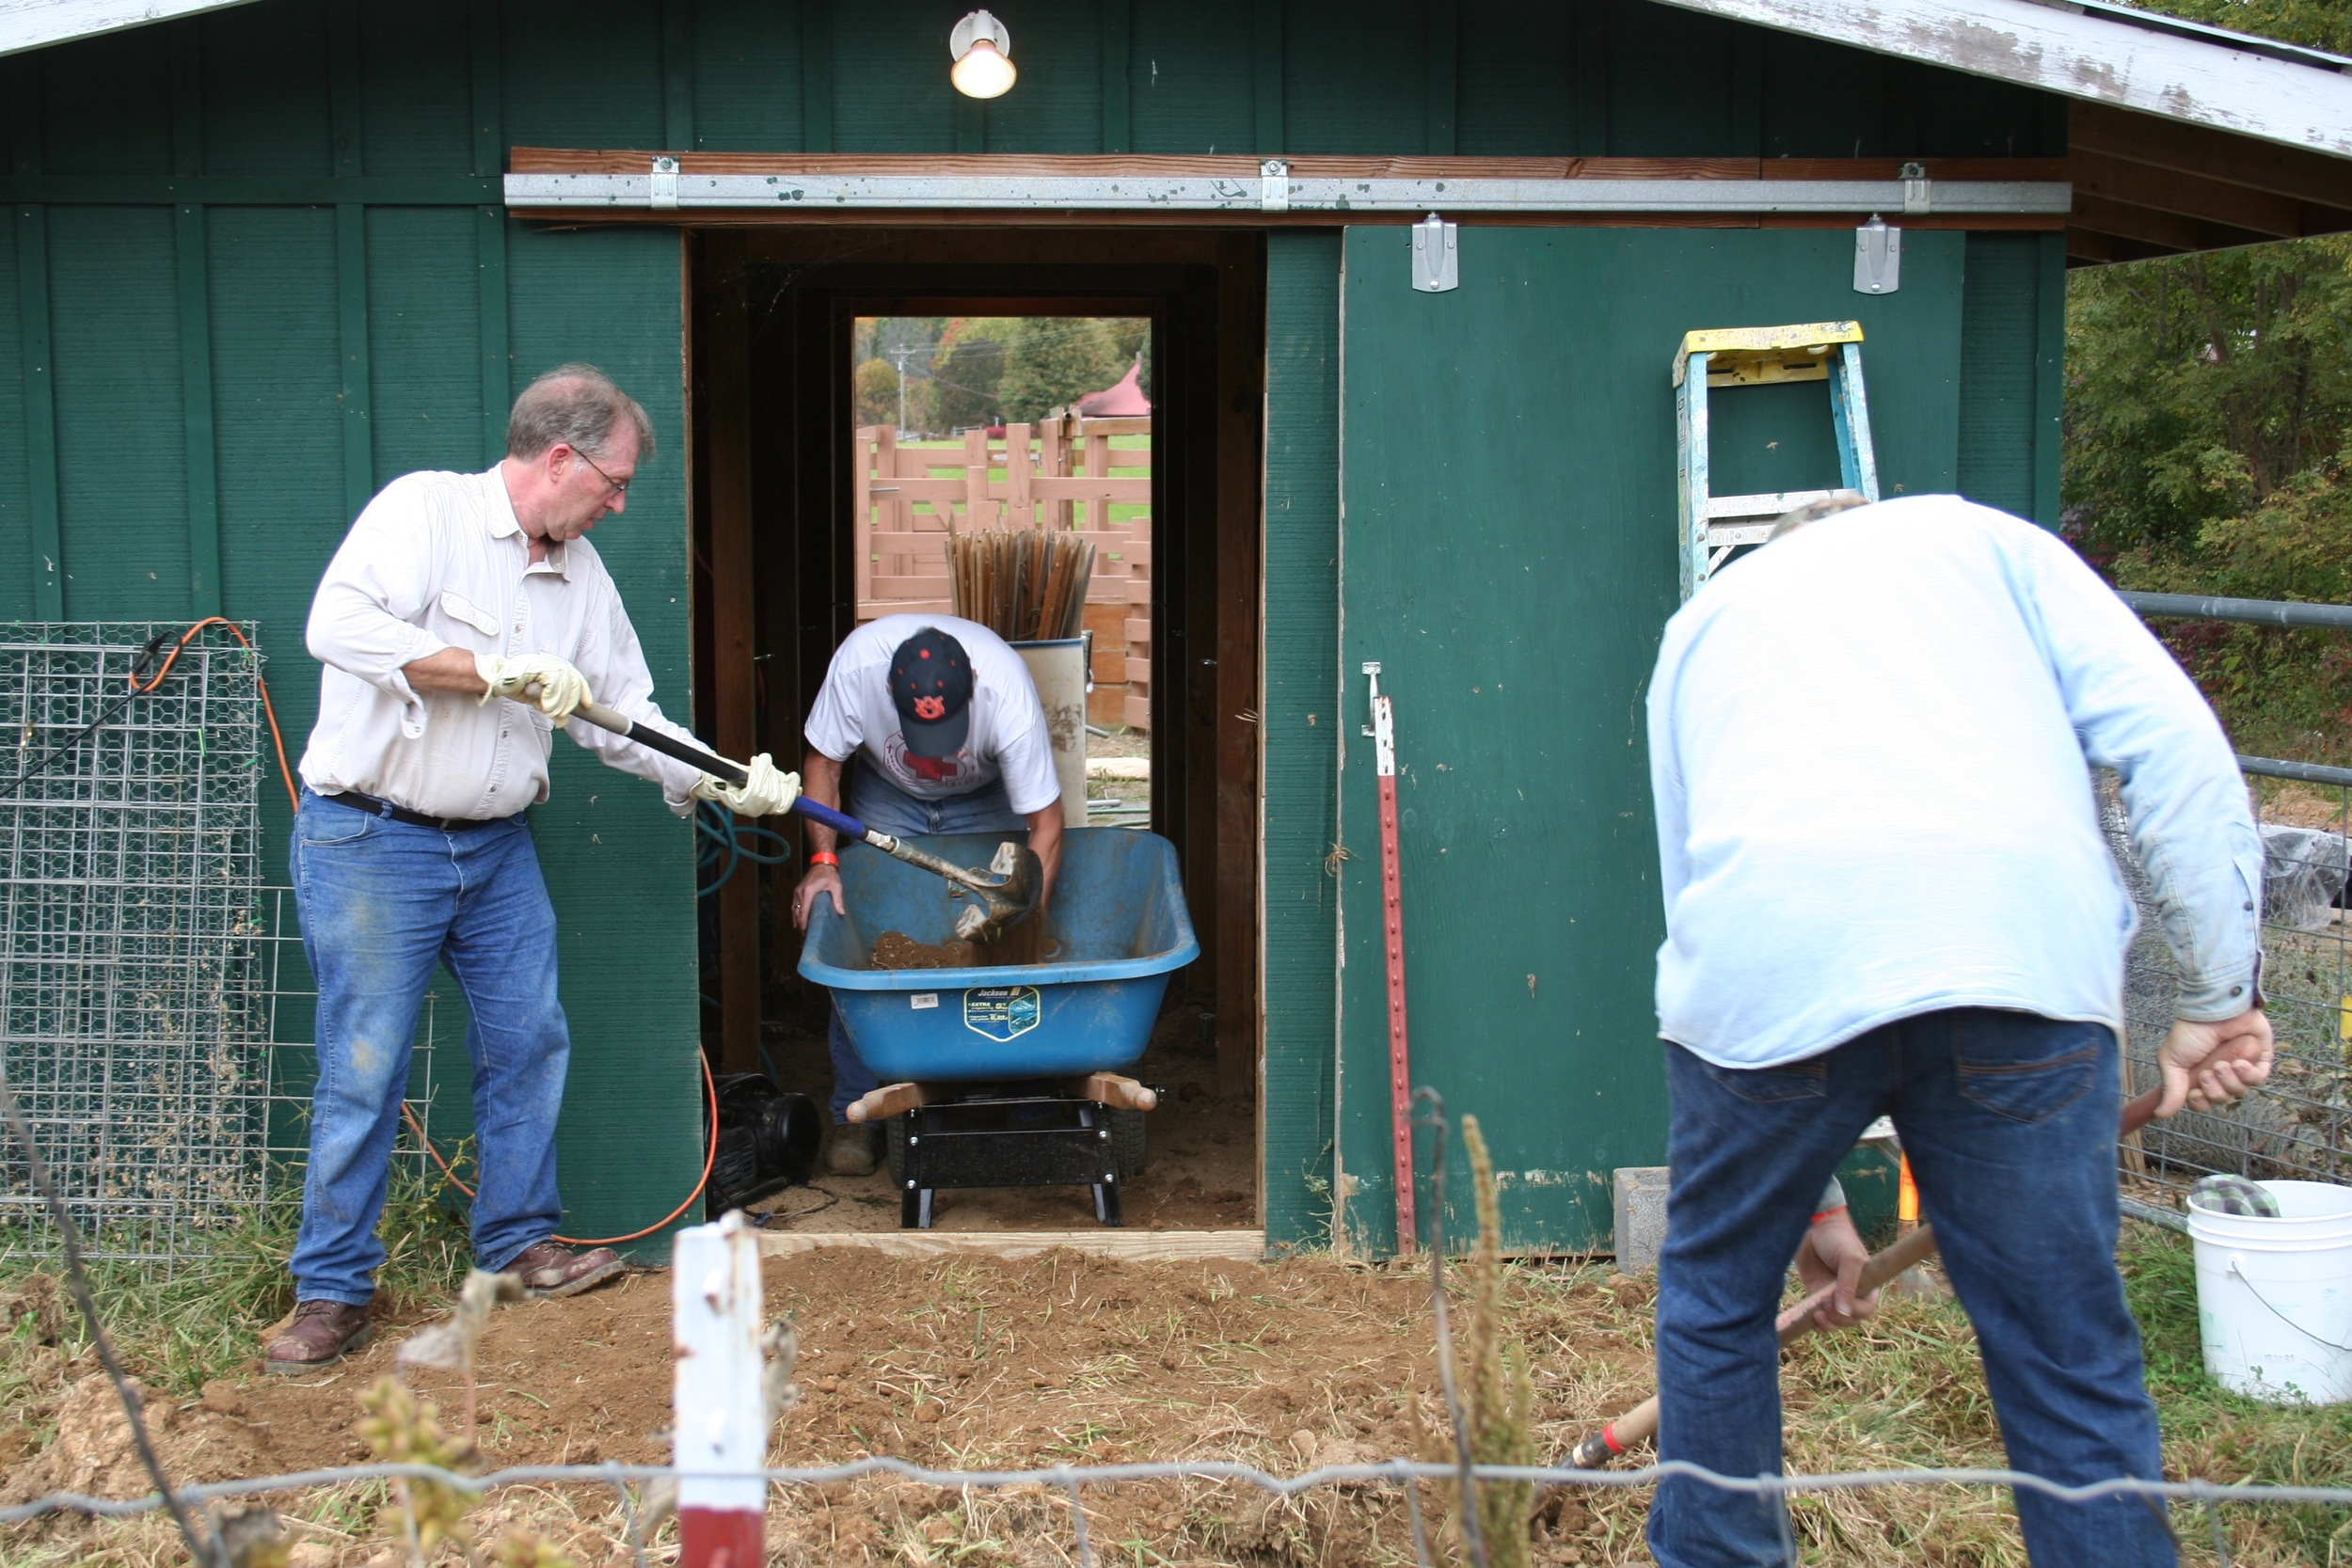 Here they are sifting the dirt for the floor of the lamb barn.